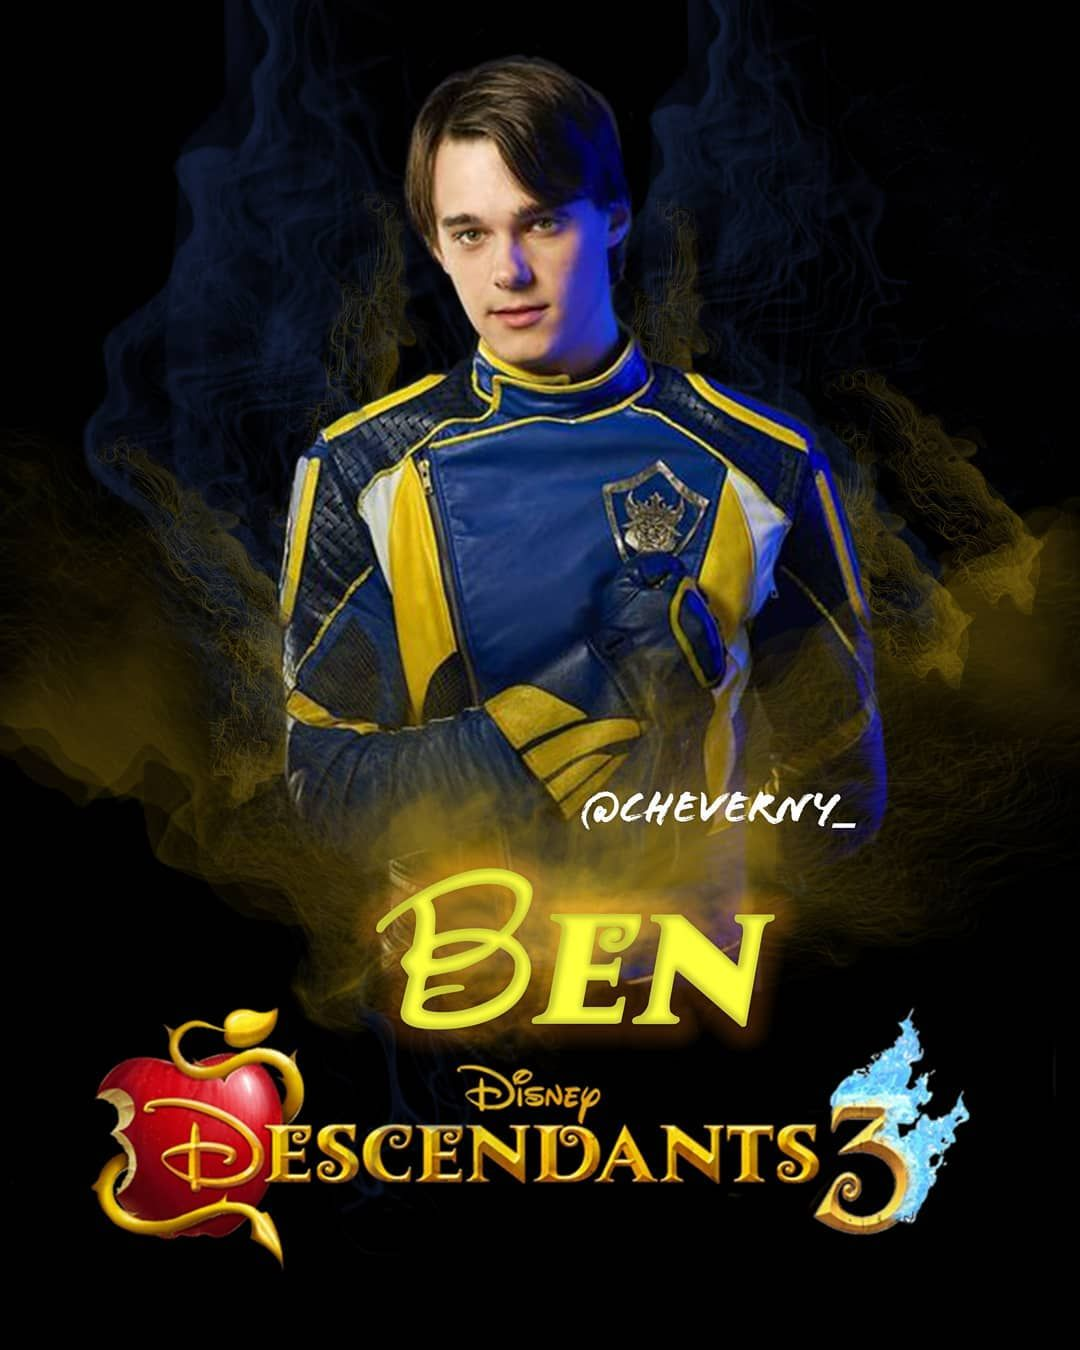 Descendants 3 Ben #descendants3